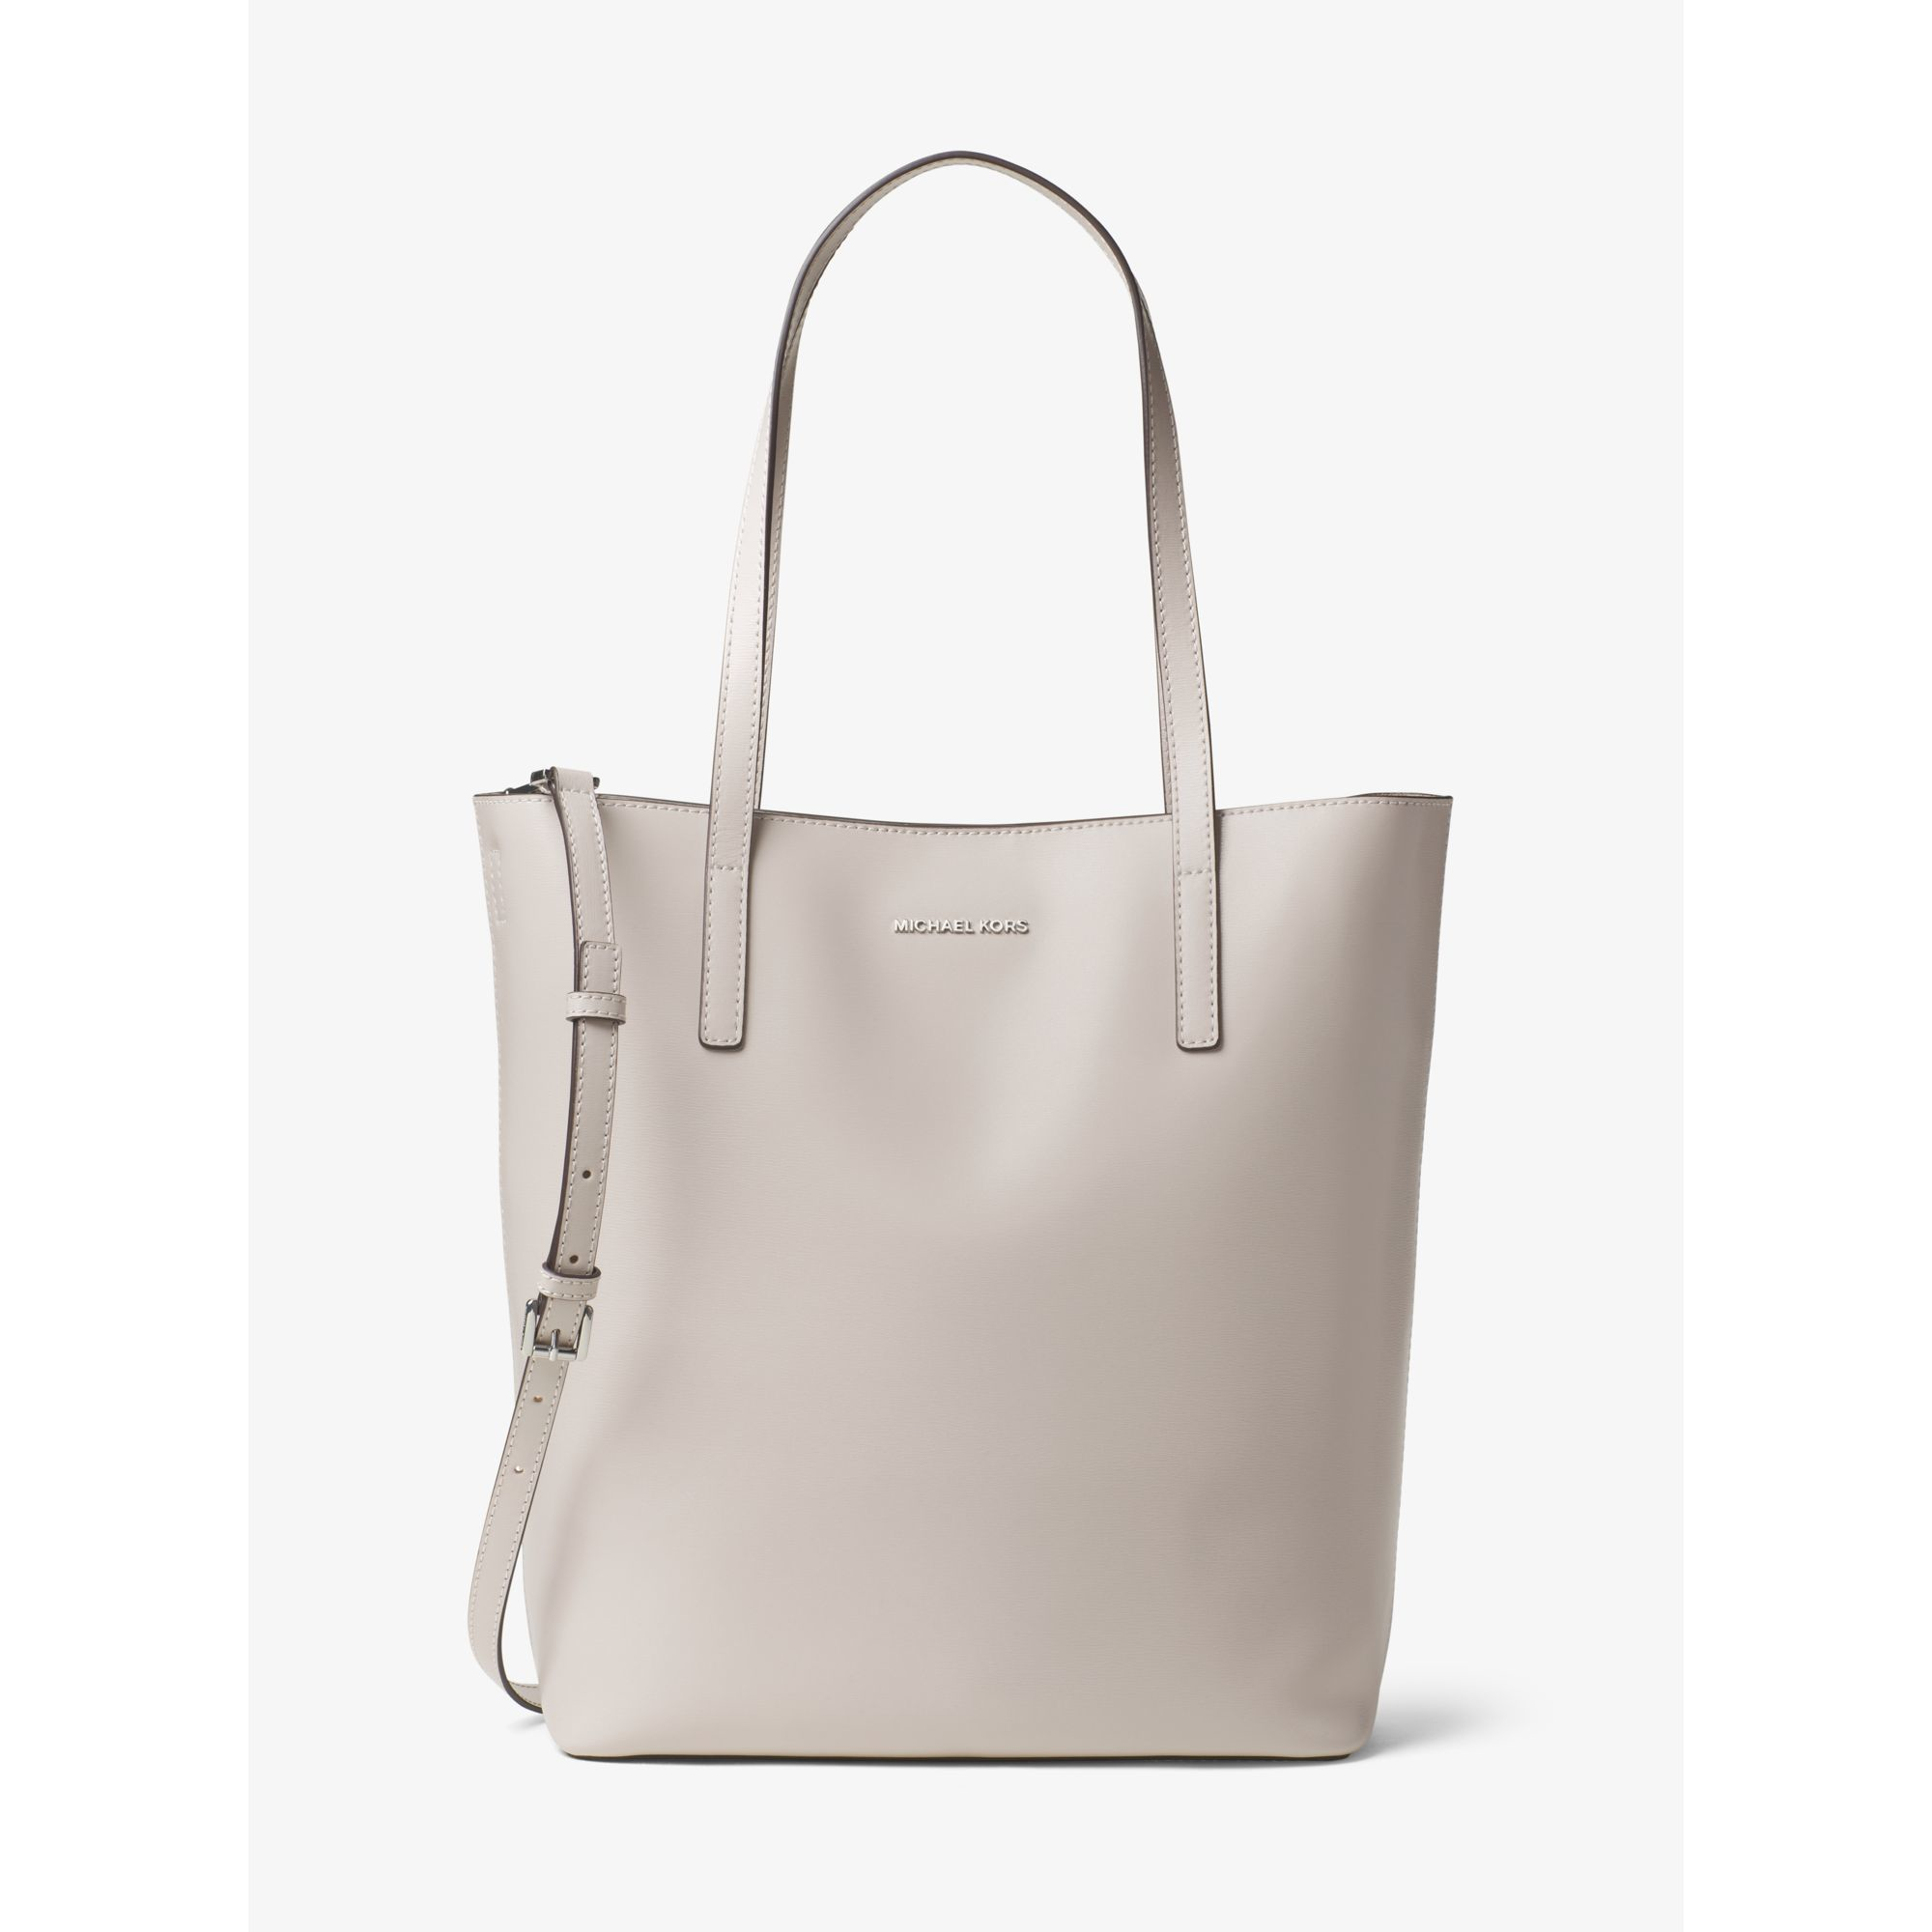 e16afd835d ... Michael kors Emry Large Leather Tote in Gray Lyst ...